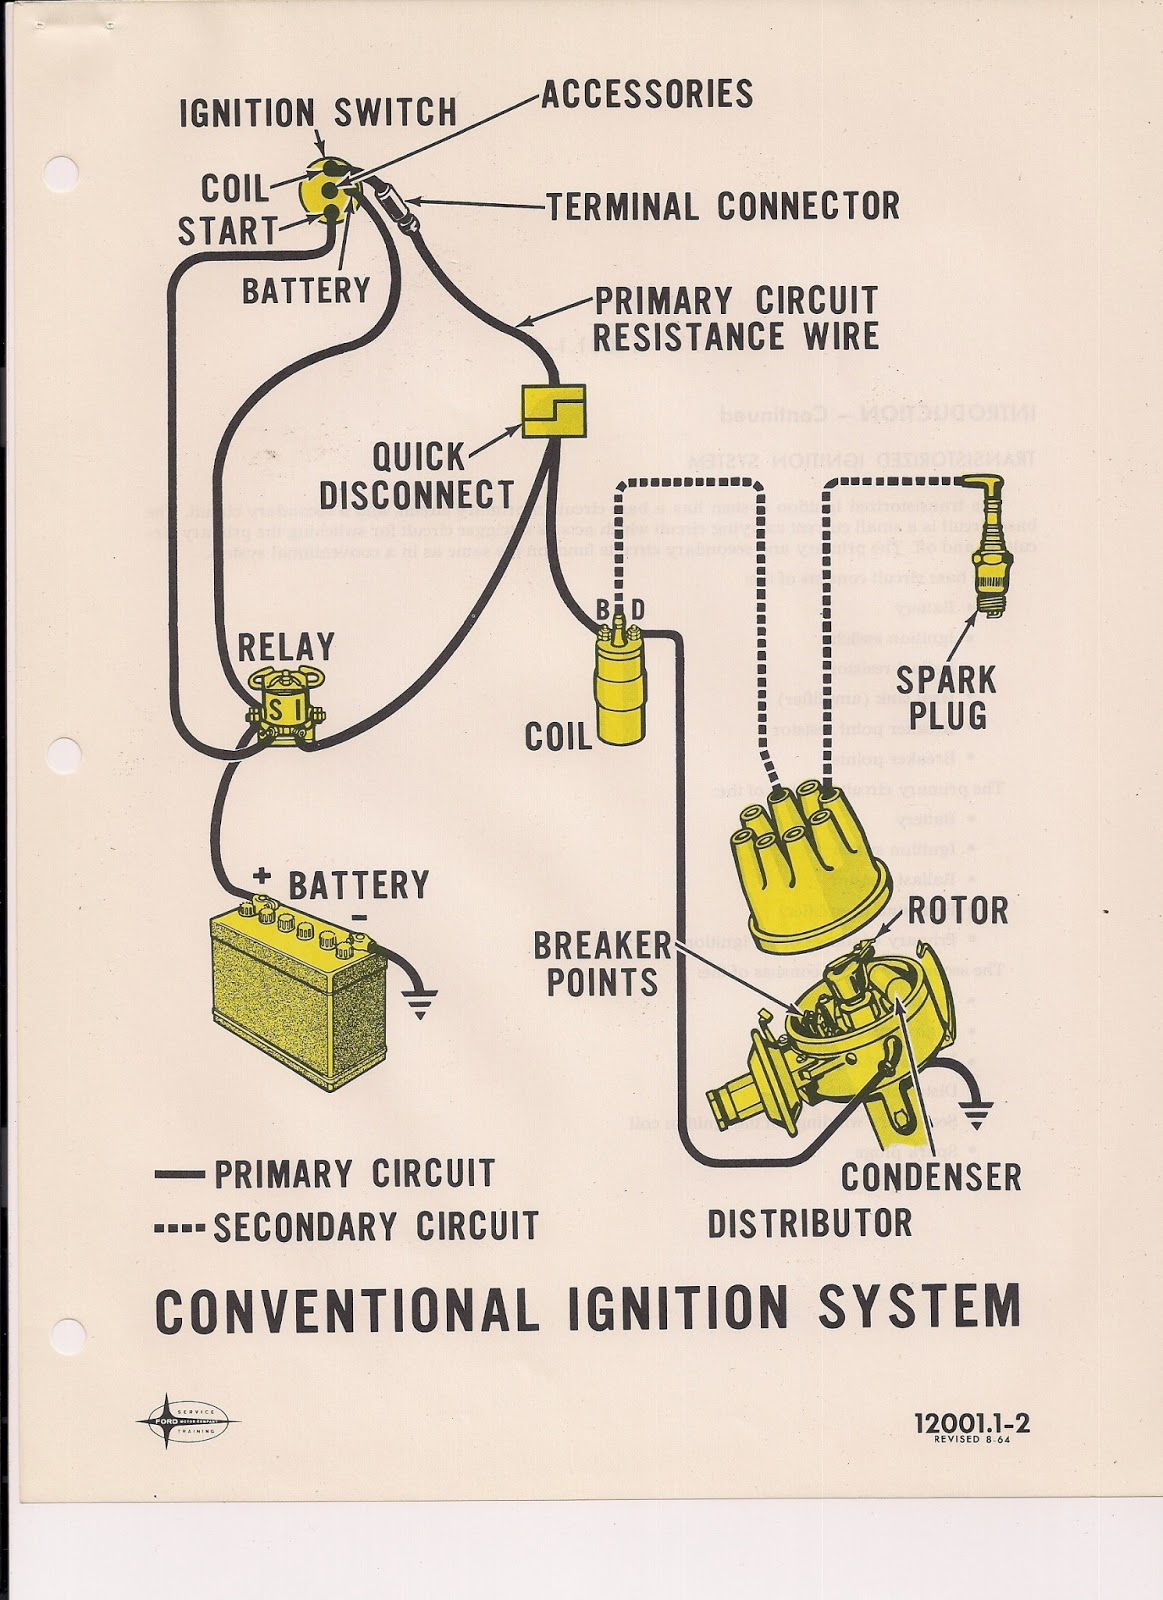 Ignition+1 the care and feeding of ponies mustang ignition system 1965 and 1966 66 mustang ignition wiring diagram at crackthecode.co